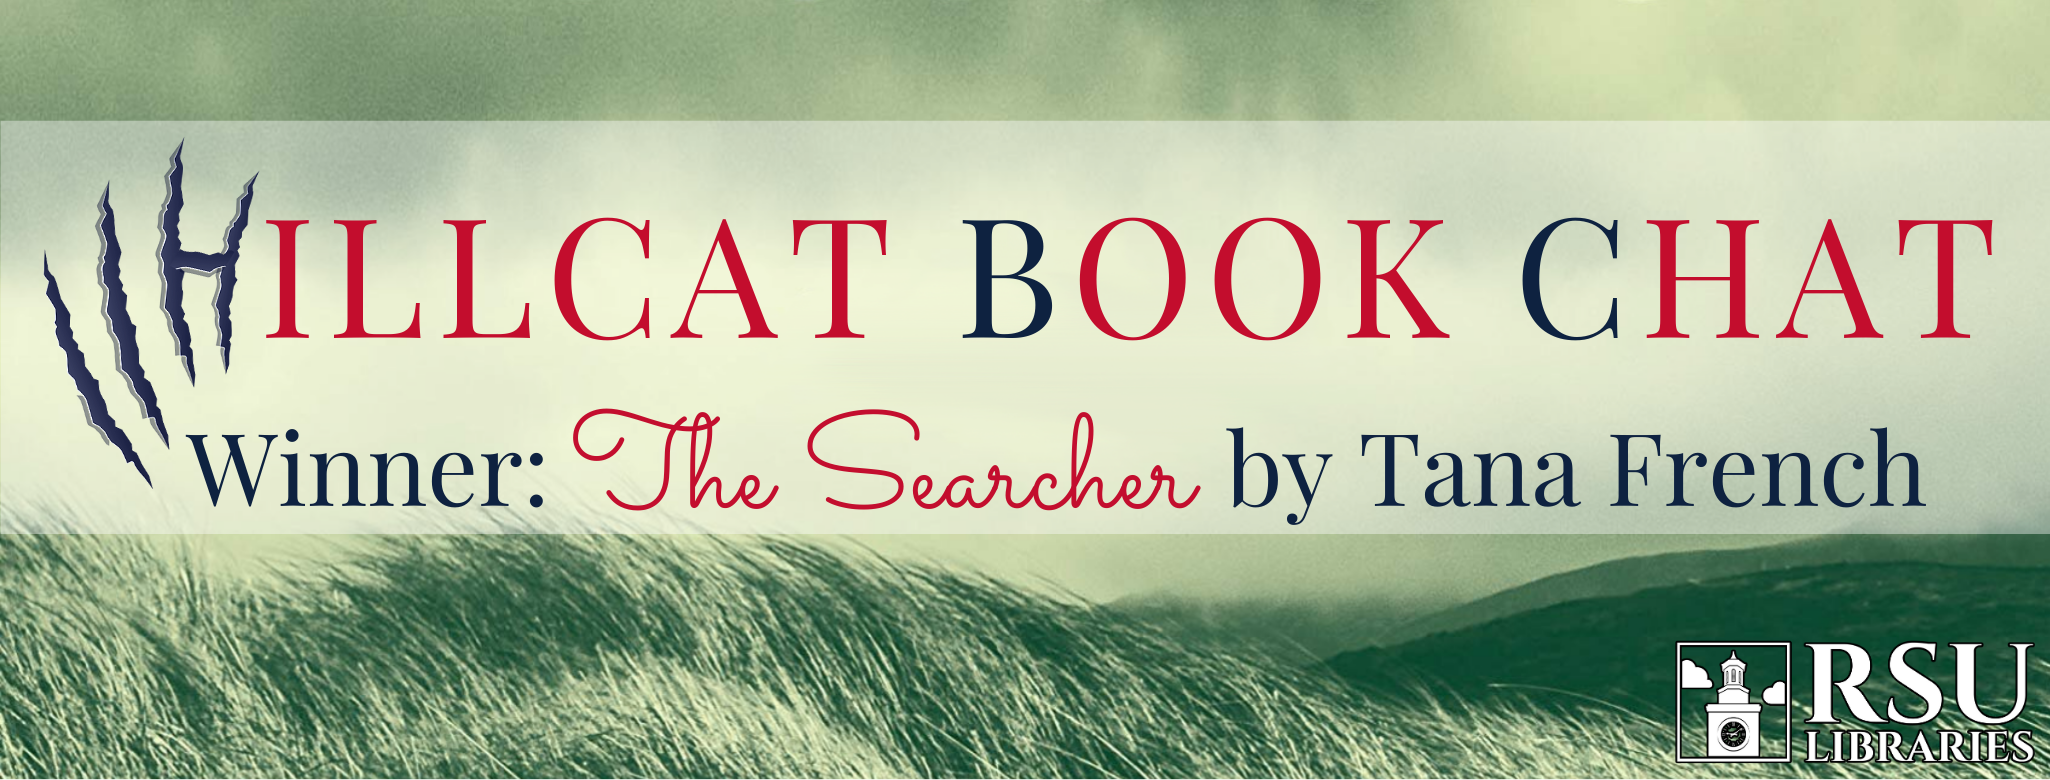 Hillcat Book Chat winner is The Searcher by Tana French.